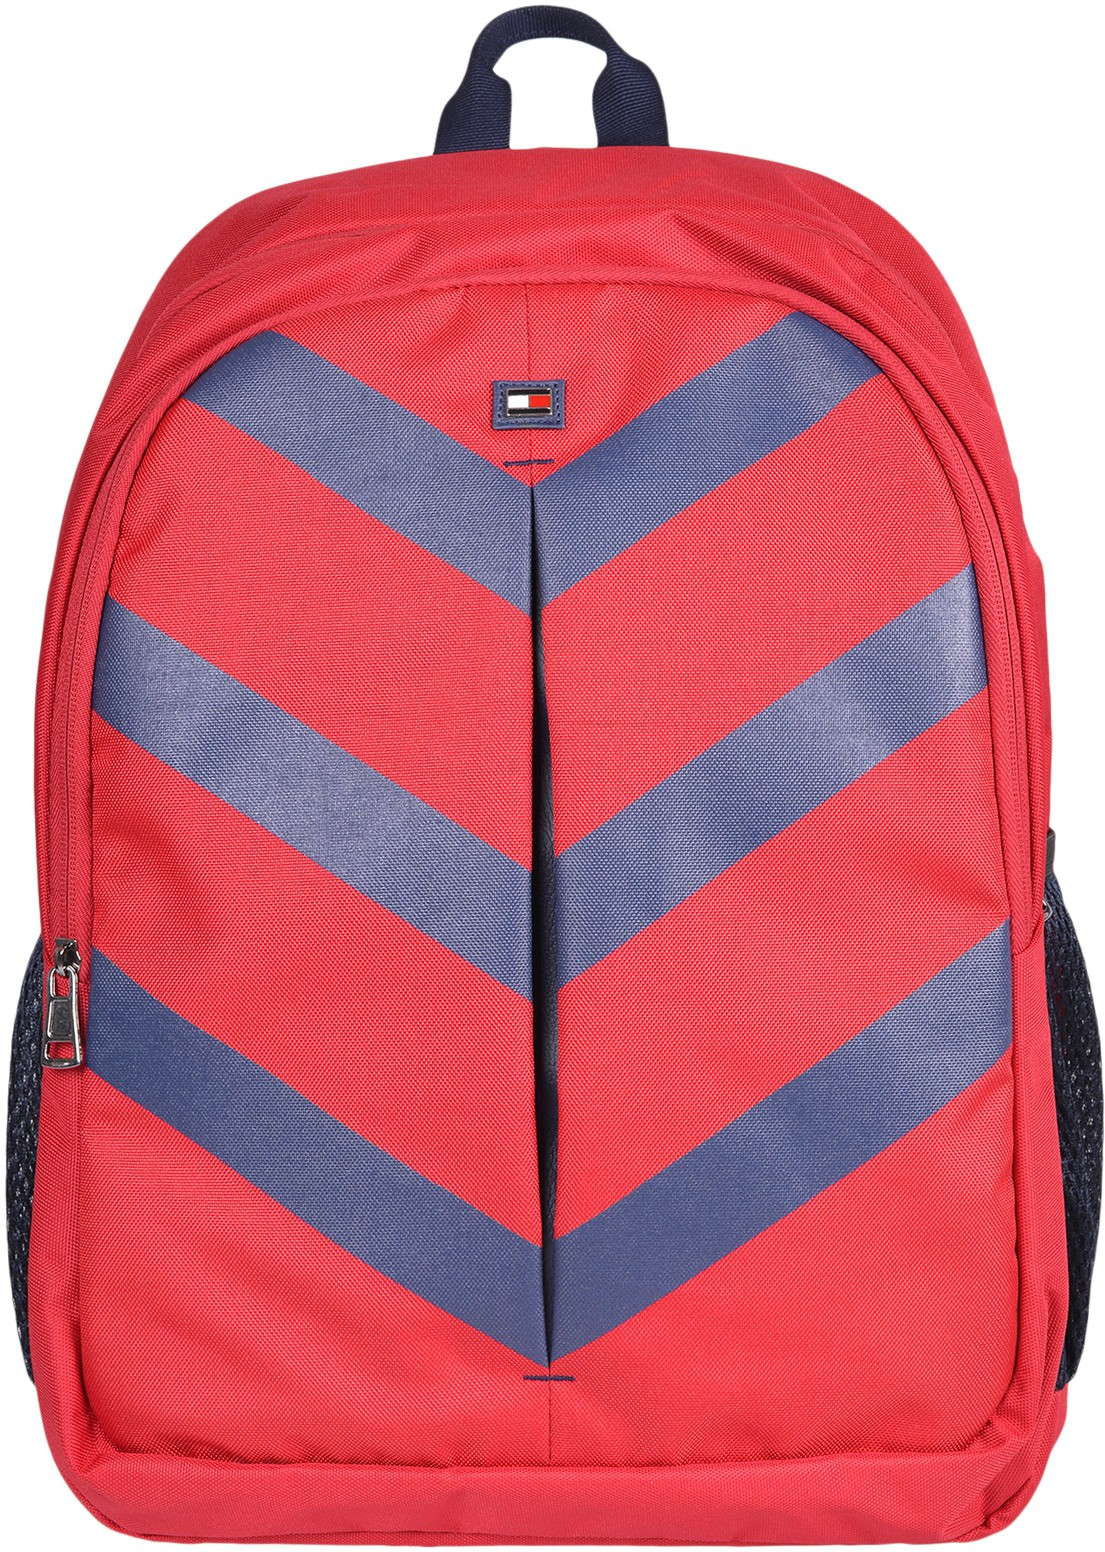 Flipkart - Backpacks, Duffels & More Minimum 40% Off